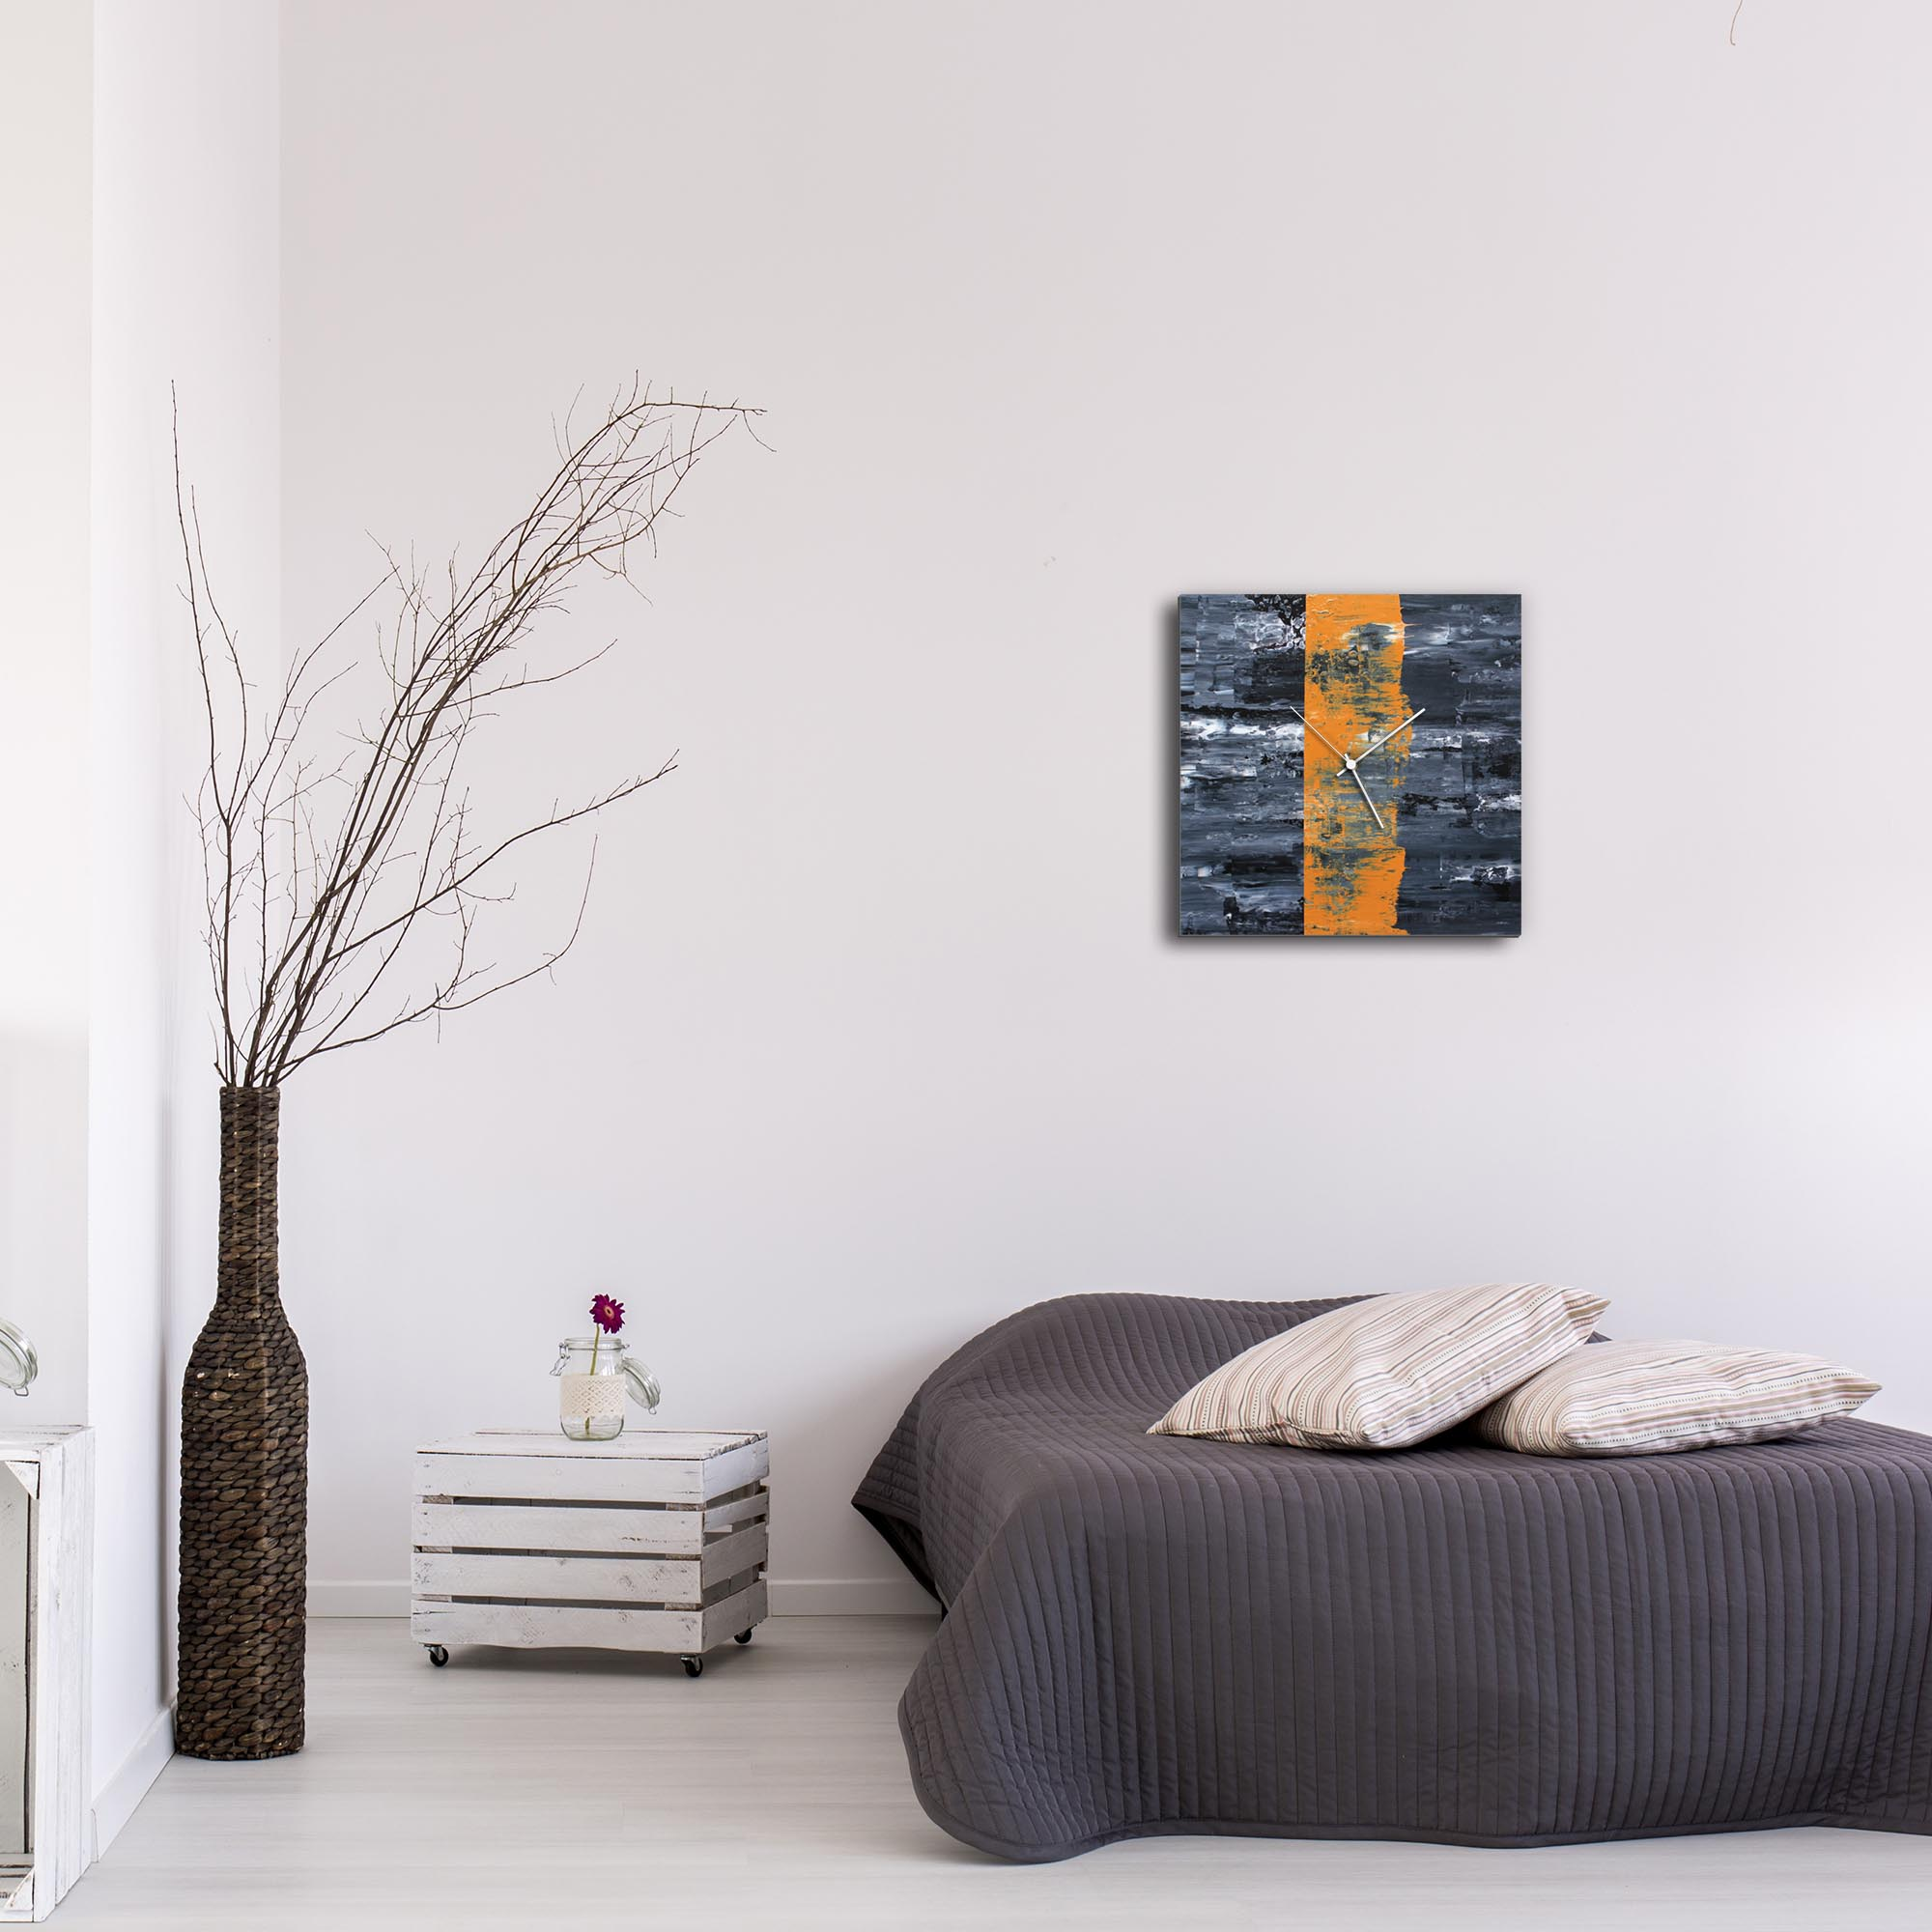 Orange Line Square Clock by Mendo Vasilevski - Urban Abstract Home Decor - Lifestyle View